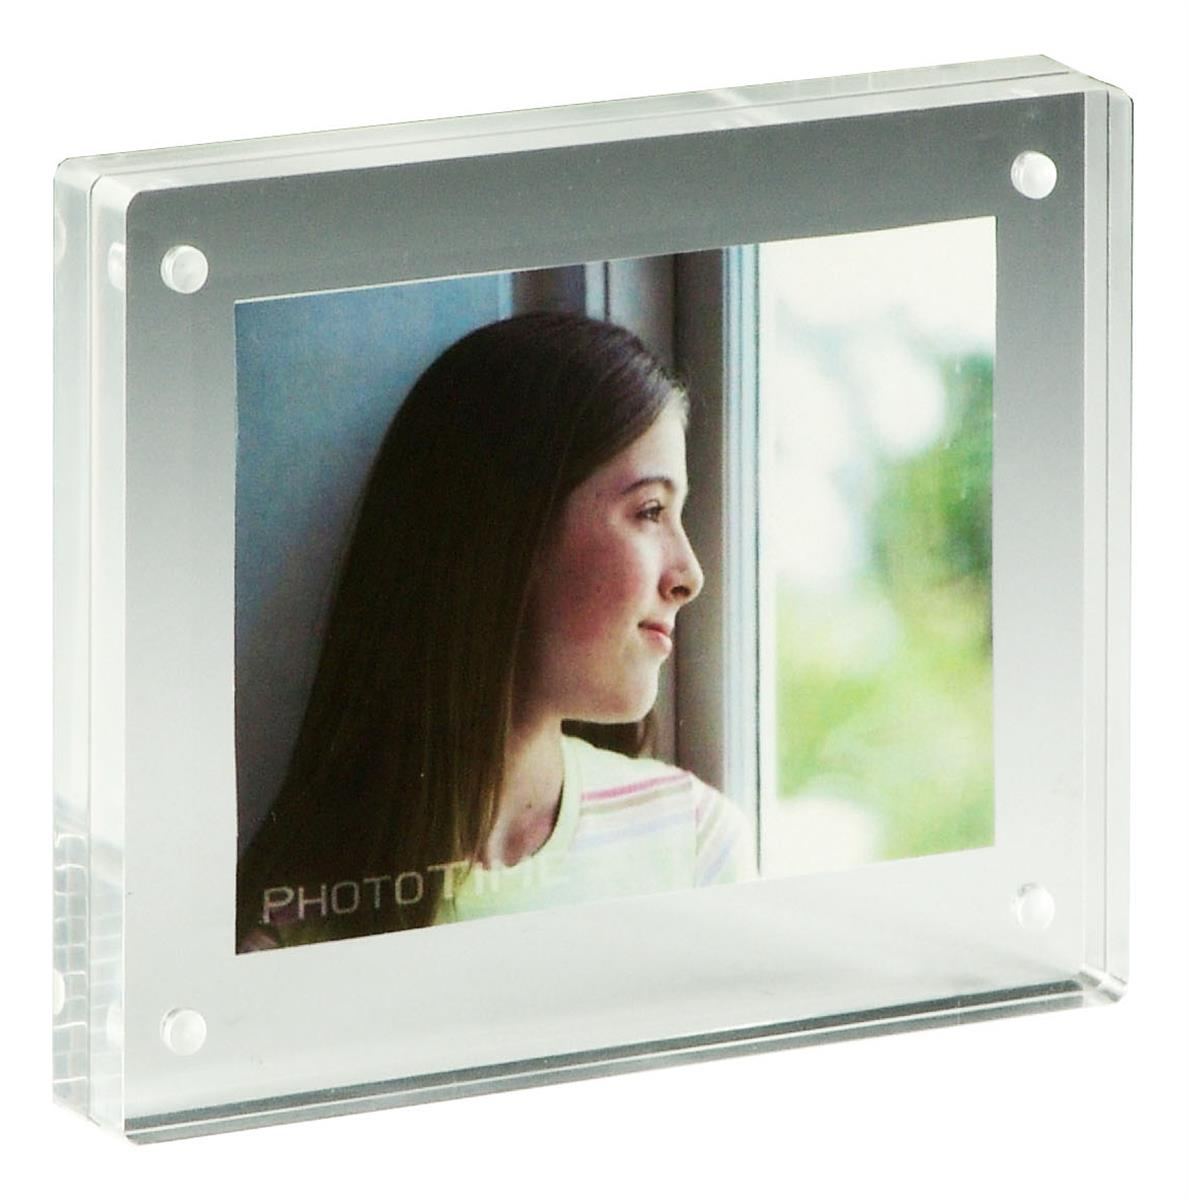 Acrylic Block Frames | Frameless Tabletop Photo Holders